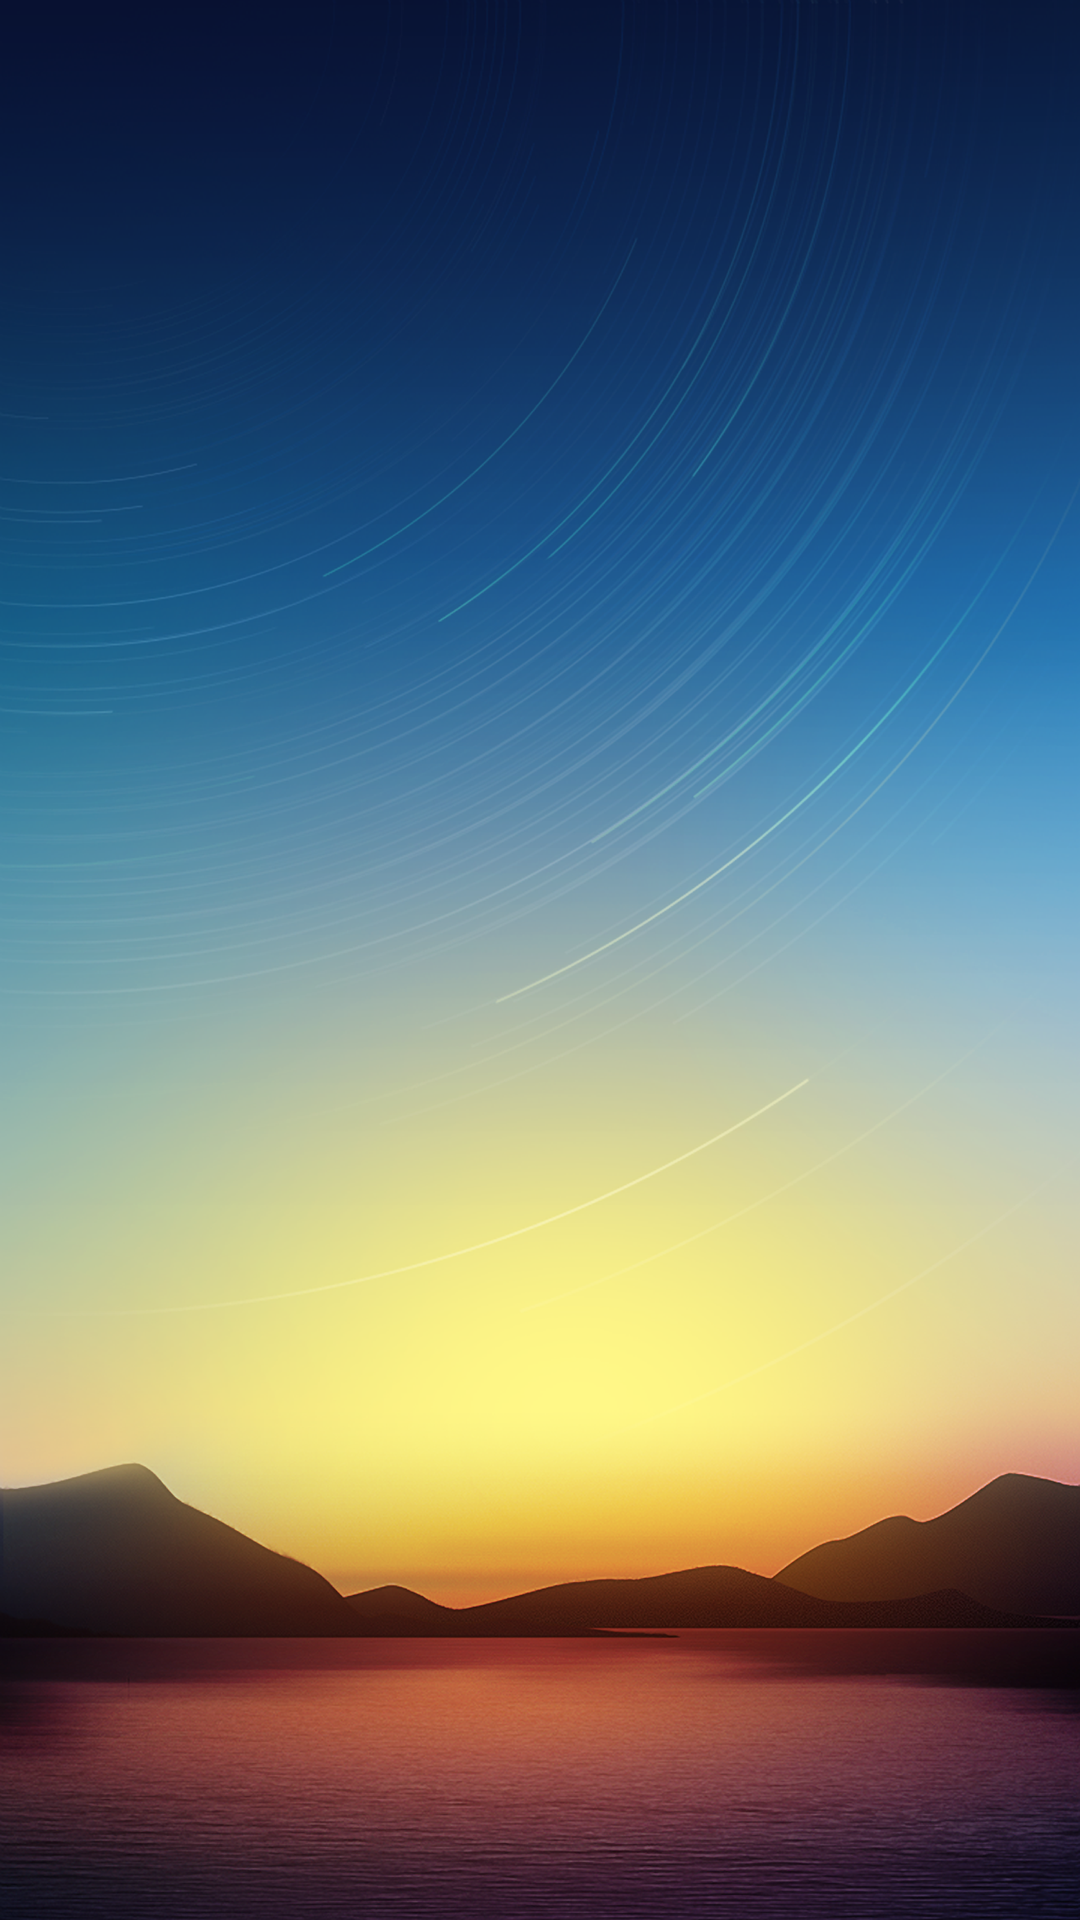 Htc One M7 Wallpaper HD